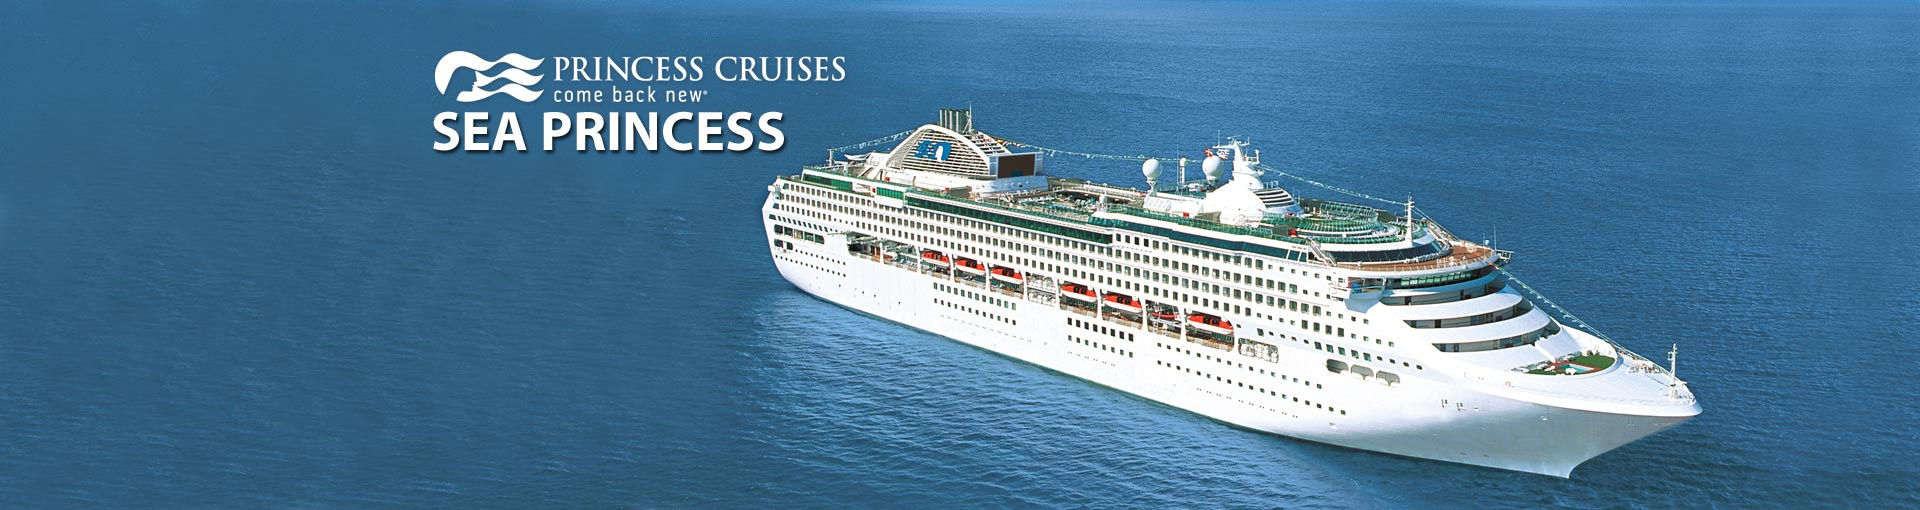 Princess Cruises Sea Princess cruise ship Sea